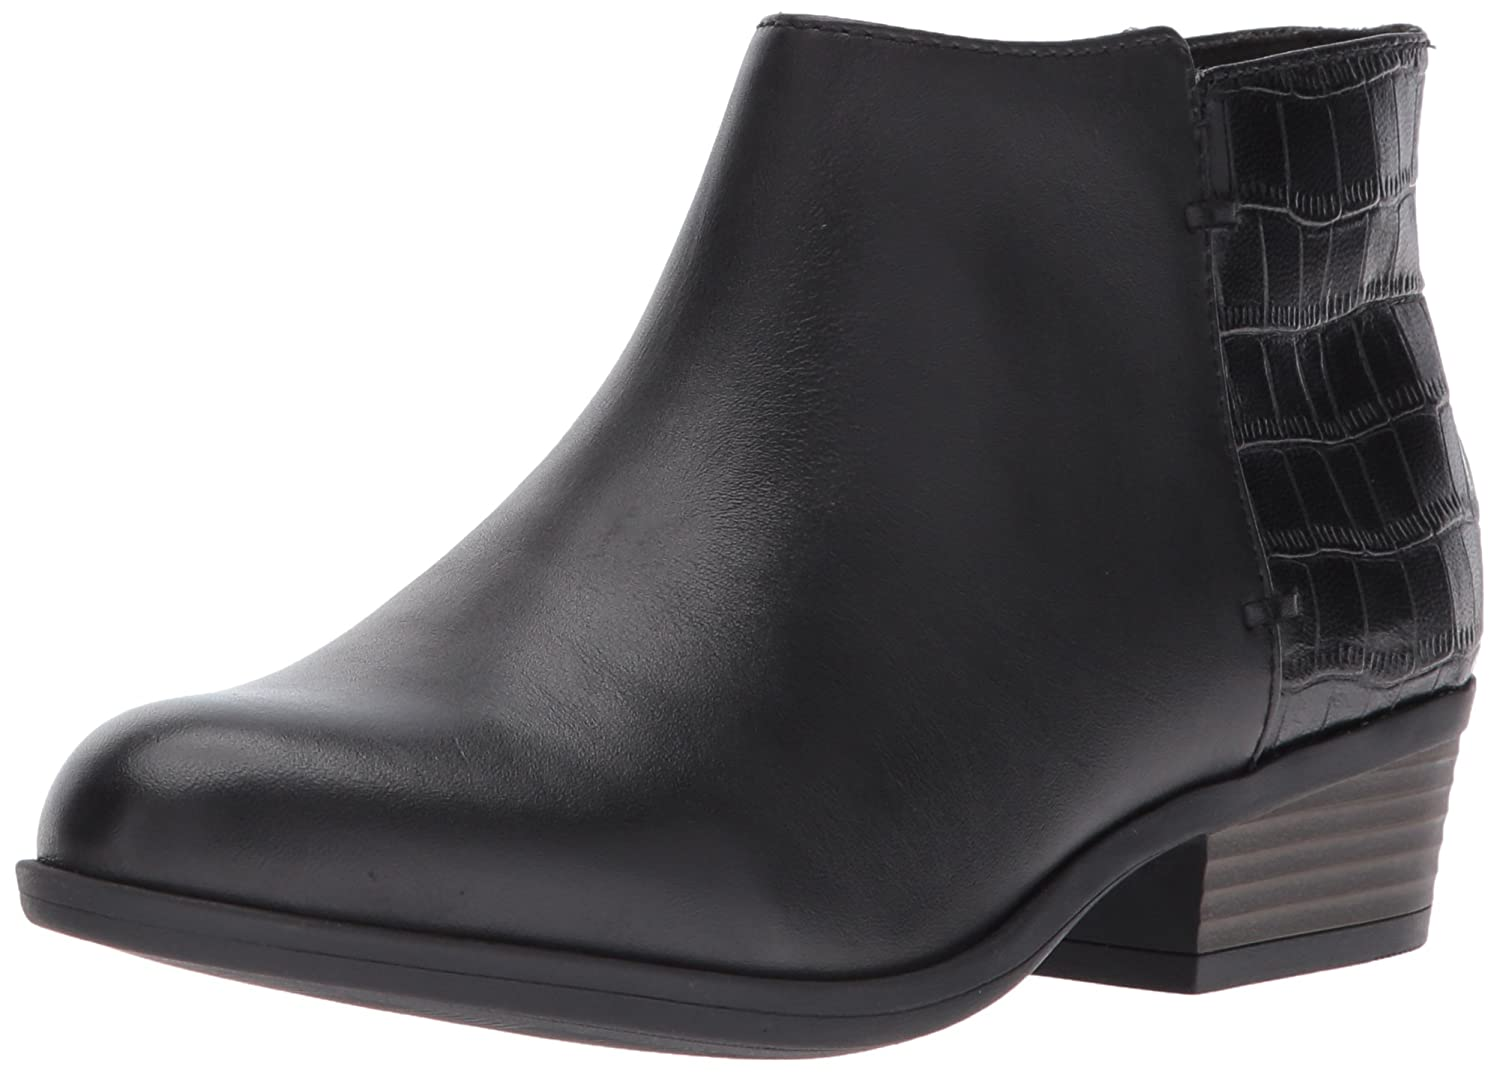 CLARKS Women's Addiy Zora Ankle Bootie B01N9JXR0N 7.5 B(M) US|Black Leather